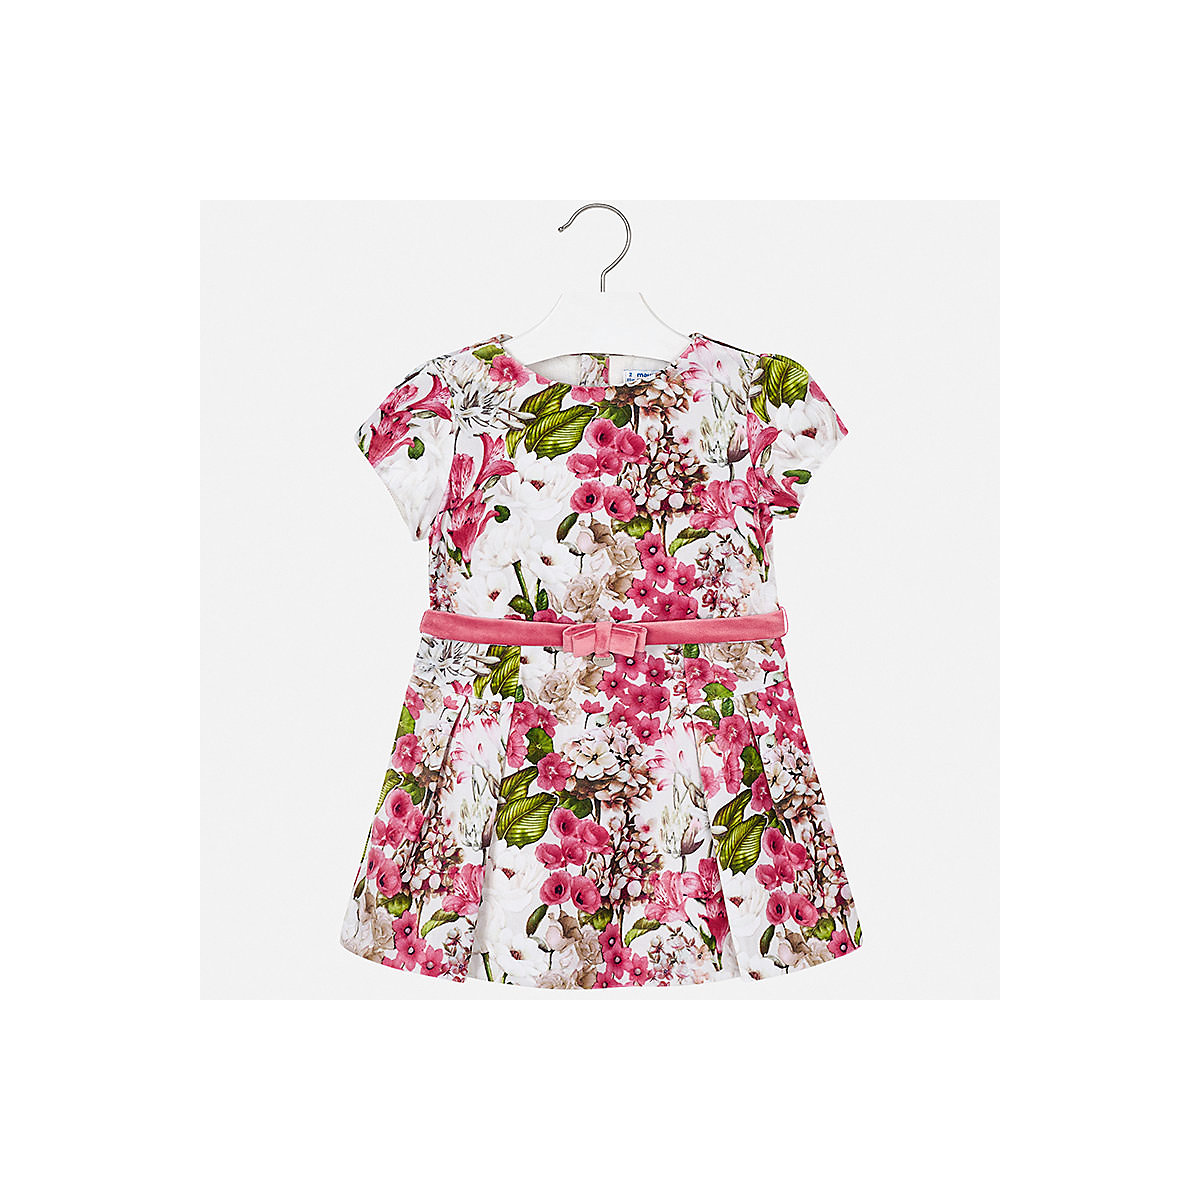 MAYORAL Dresses 8849521 Polyester Casual children clothing